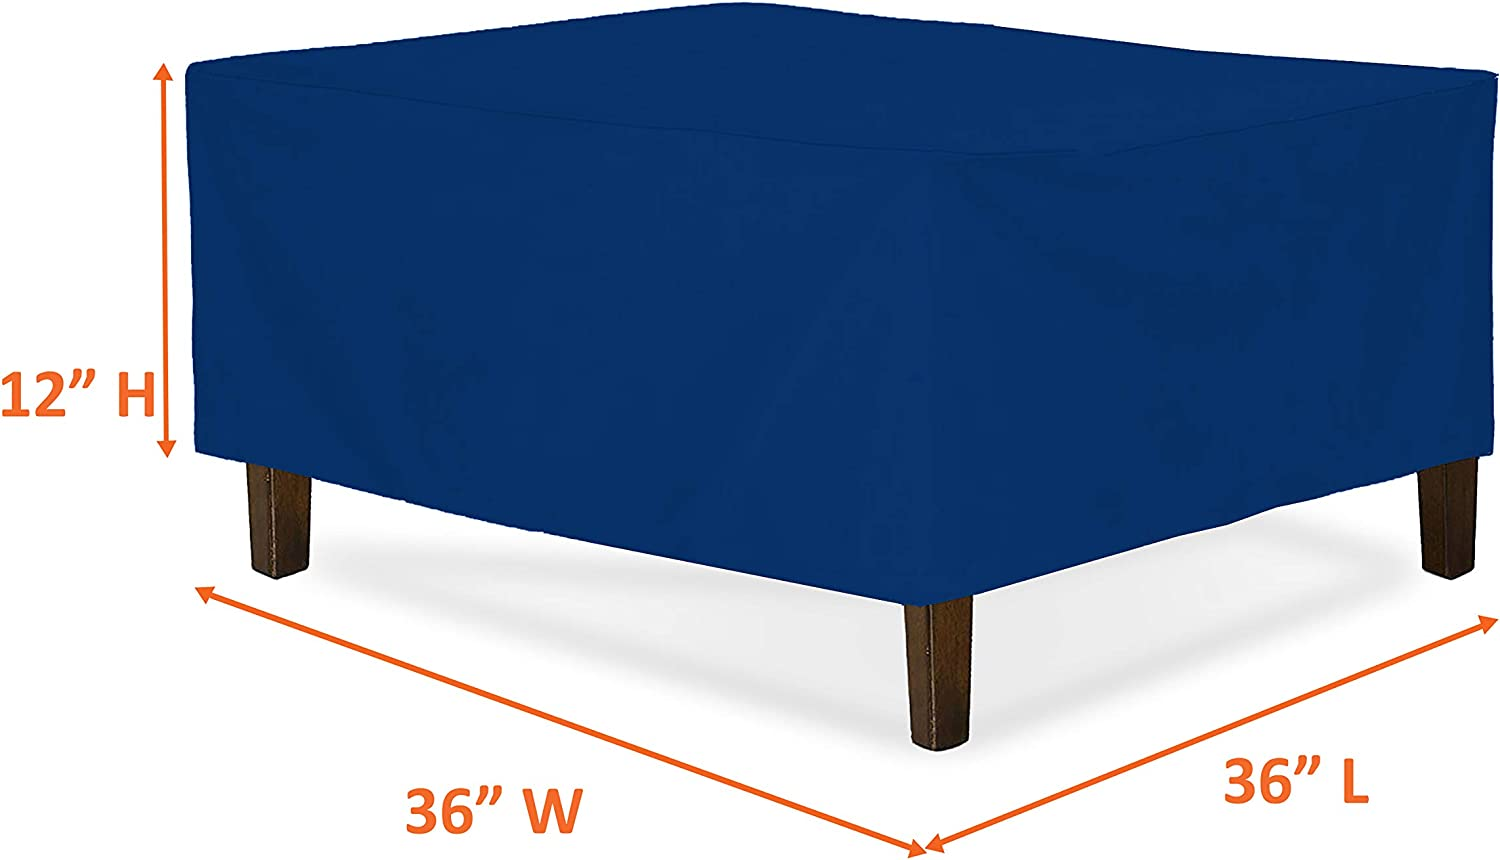 Waterproof /& Weather Resistant Patio Furniture Covers 30W x 30L x 18H, Grey Outdoor Ottoman Cover 18 Oz Square Ottoman Cover Heavy Duty Fabric with Drawstring for Snug fit